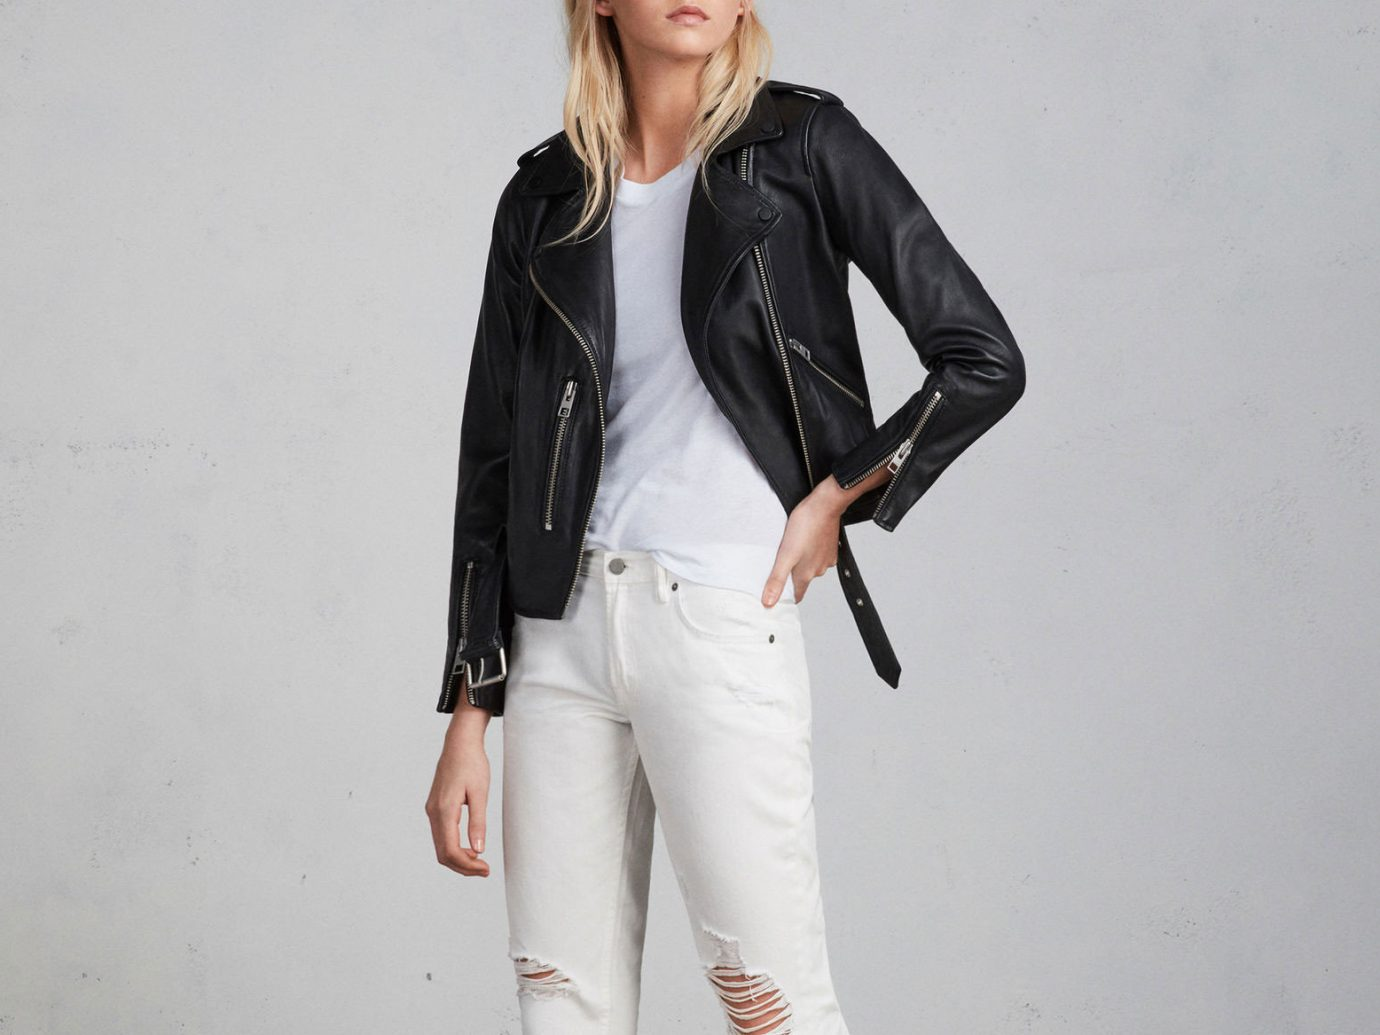 Packing Tips Style + Design Travel Shop person white clothing jacket fashion model leather jacket leather fashion material suit top trouser shoe coat posing dressed